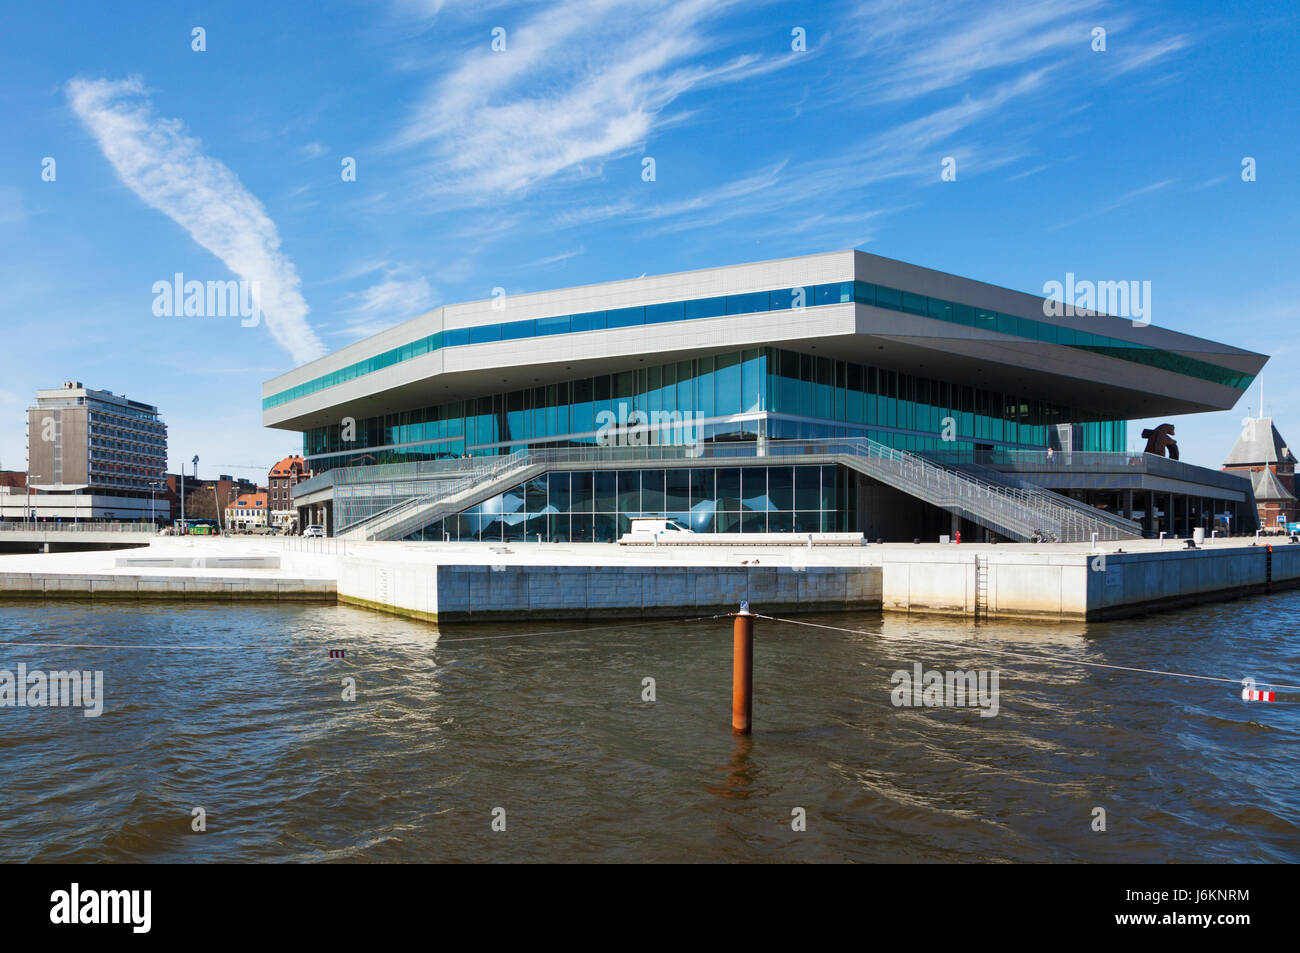 Dokk1 building at Aarhus, Denmark, seen from the harbor. Dokk1 is a public library and culture center. - Stock Image